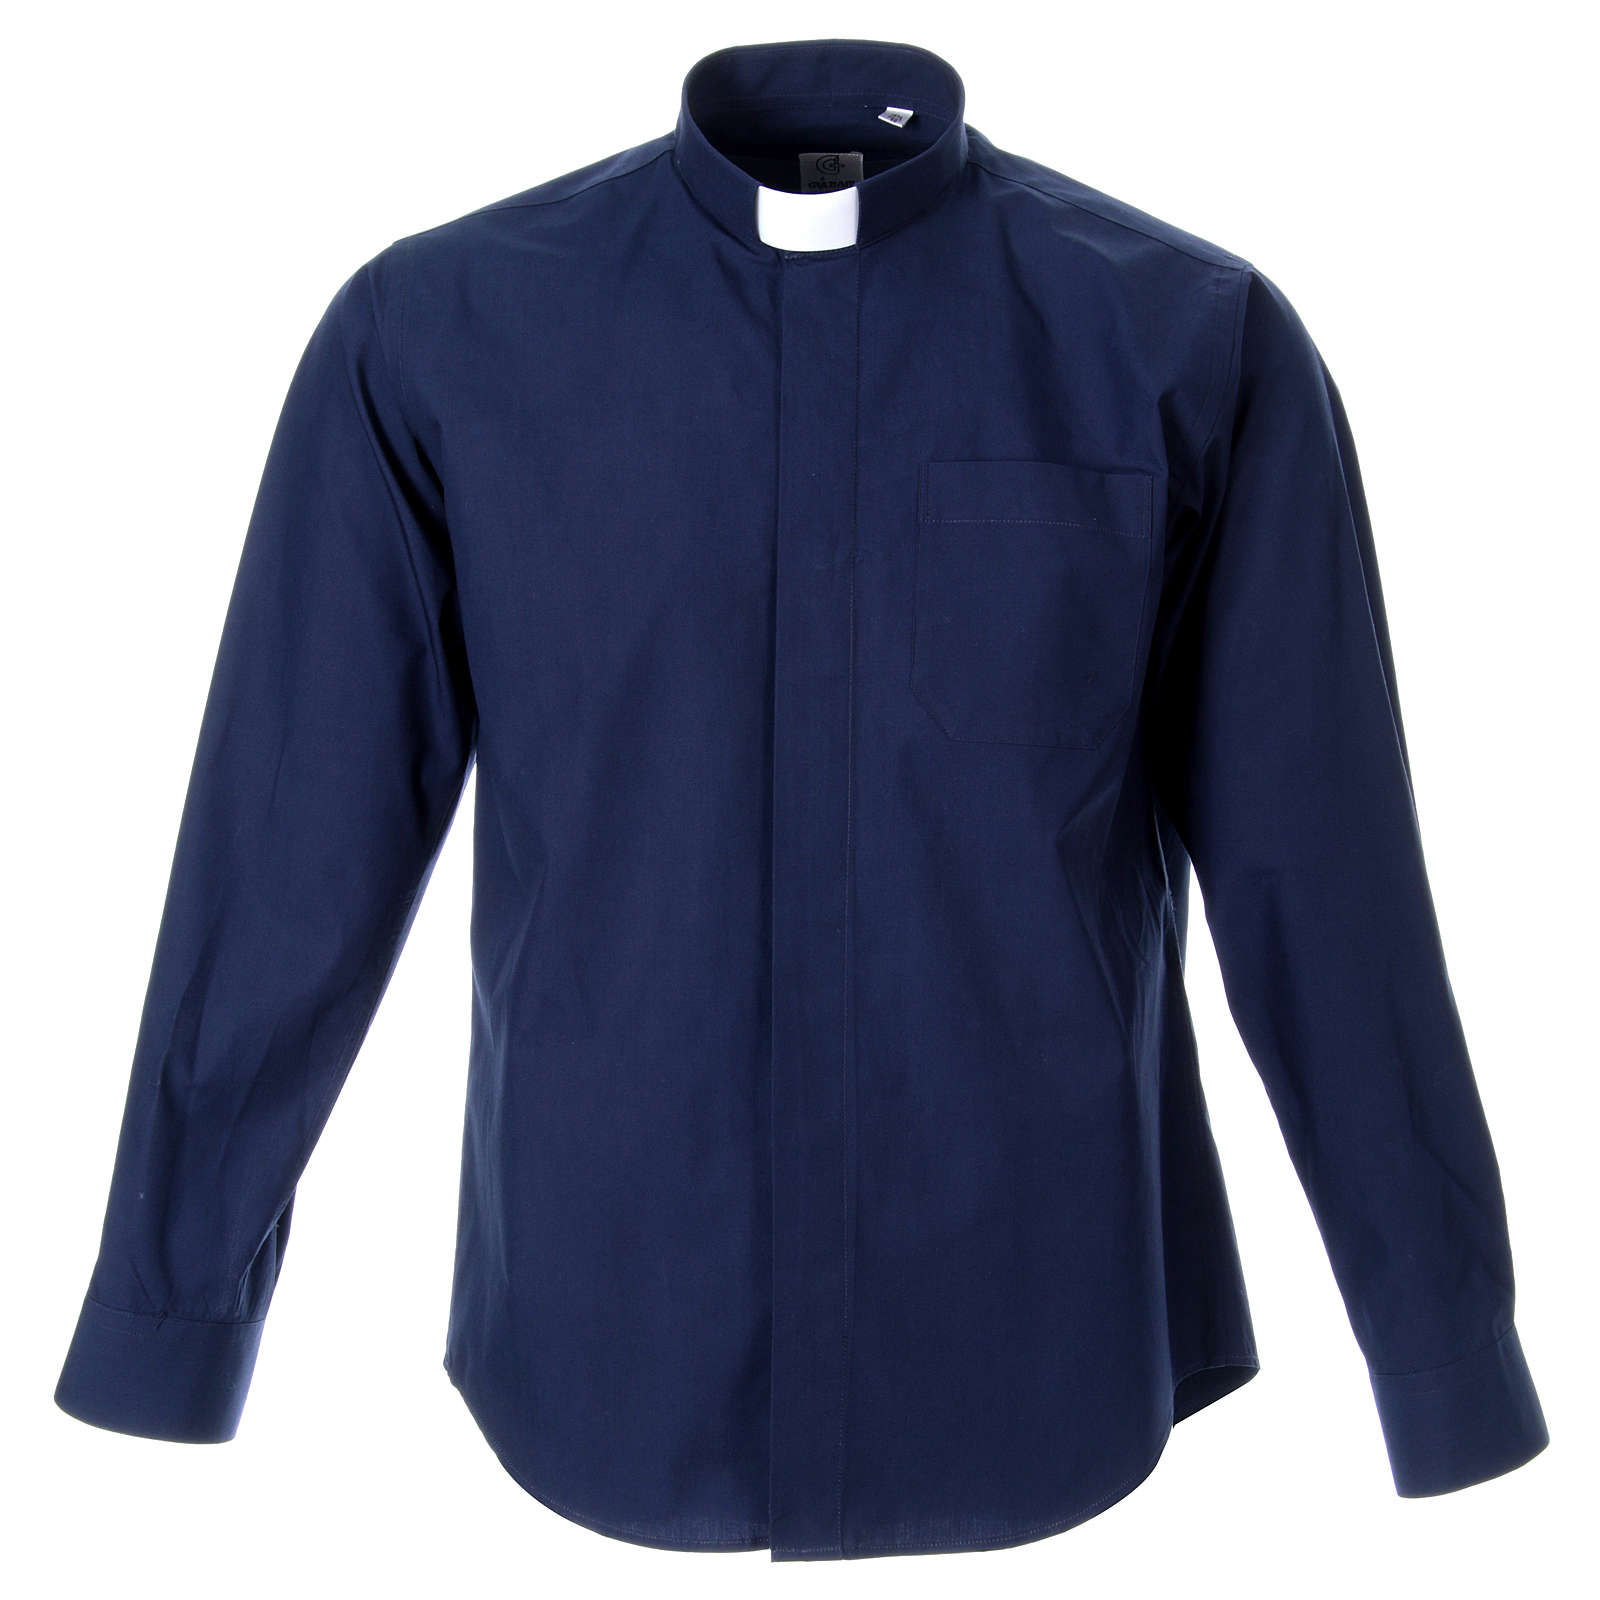 STOCK Camisa clergy manga larga popelina azul 4